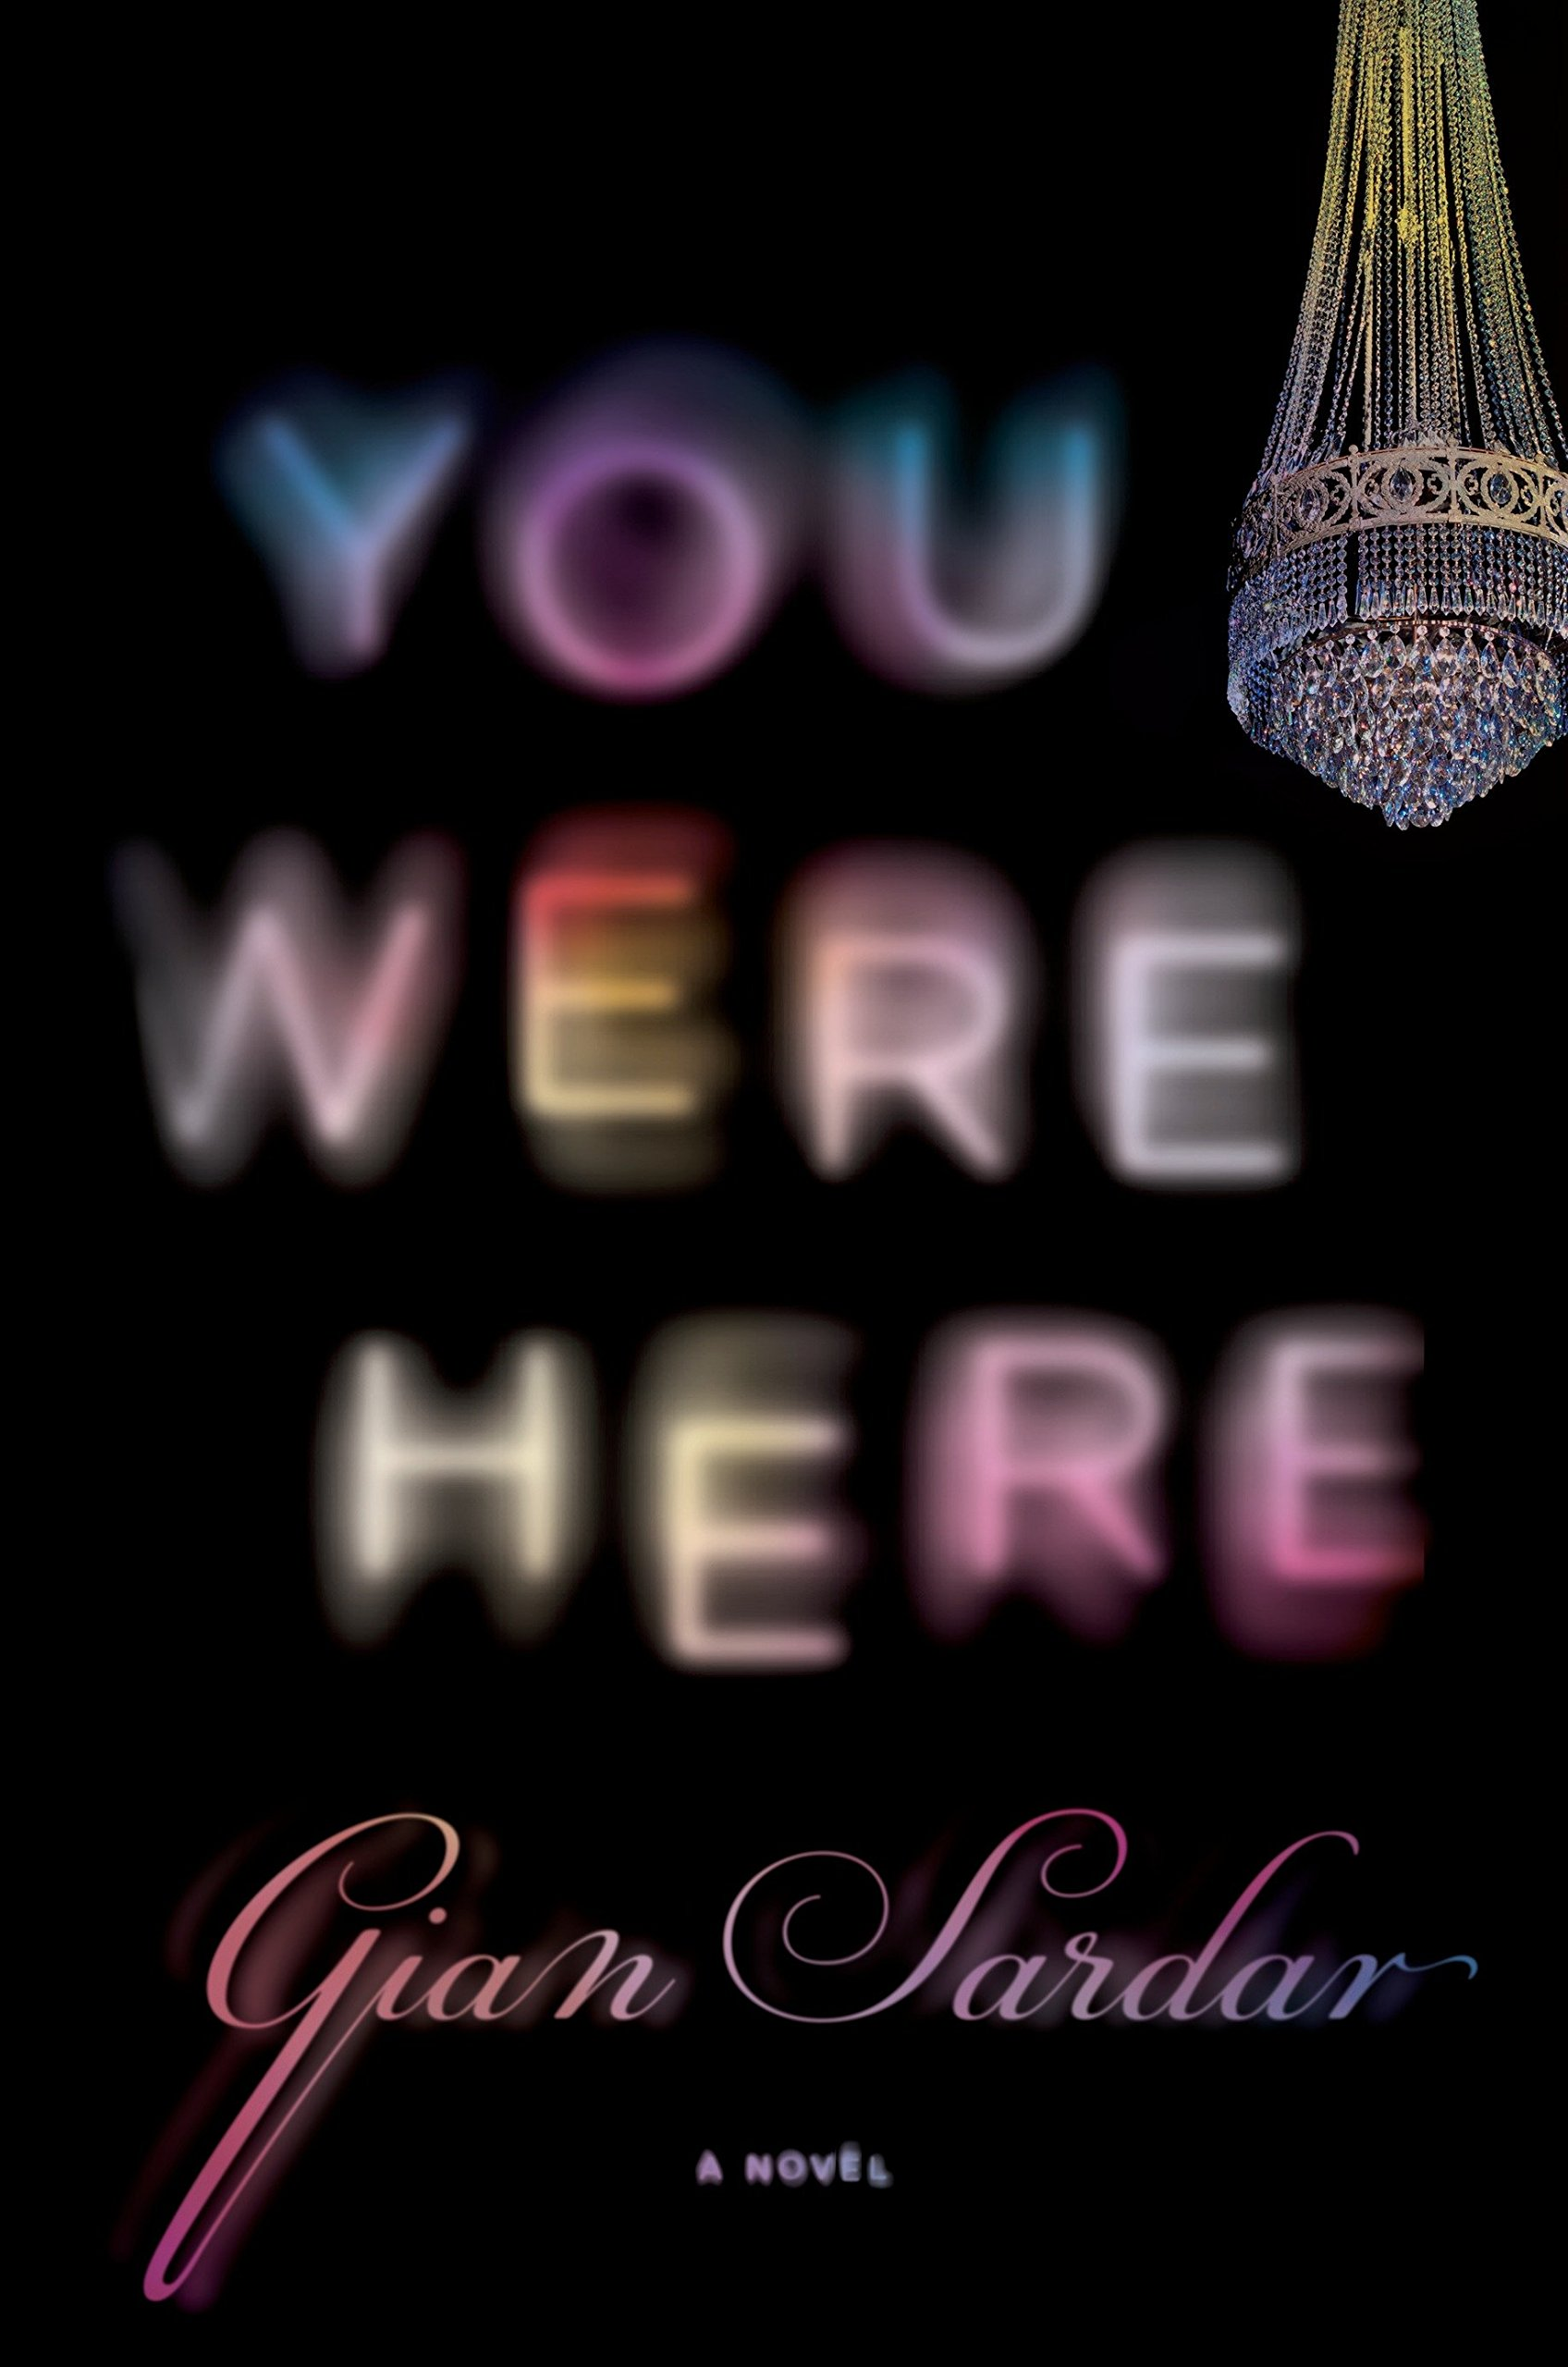 Amazon.fr - You Were Here - Gian Sardar - Livres ae2d58ab5